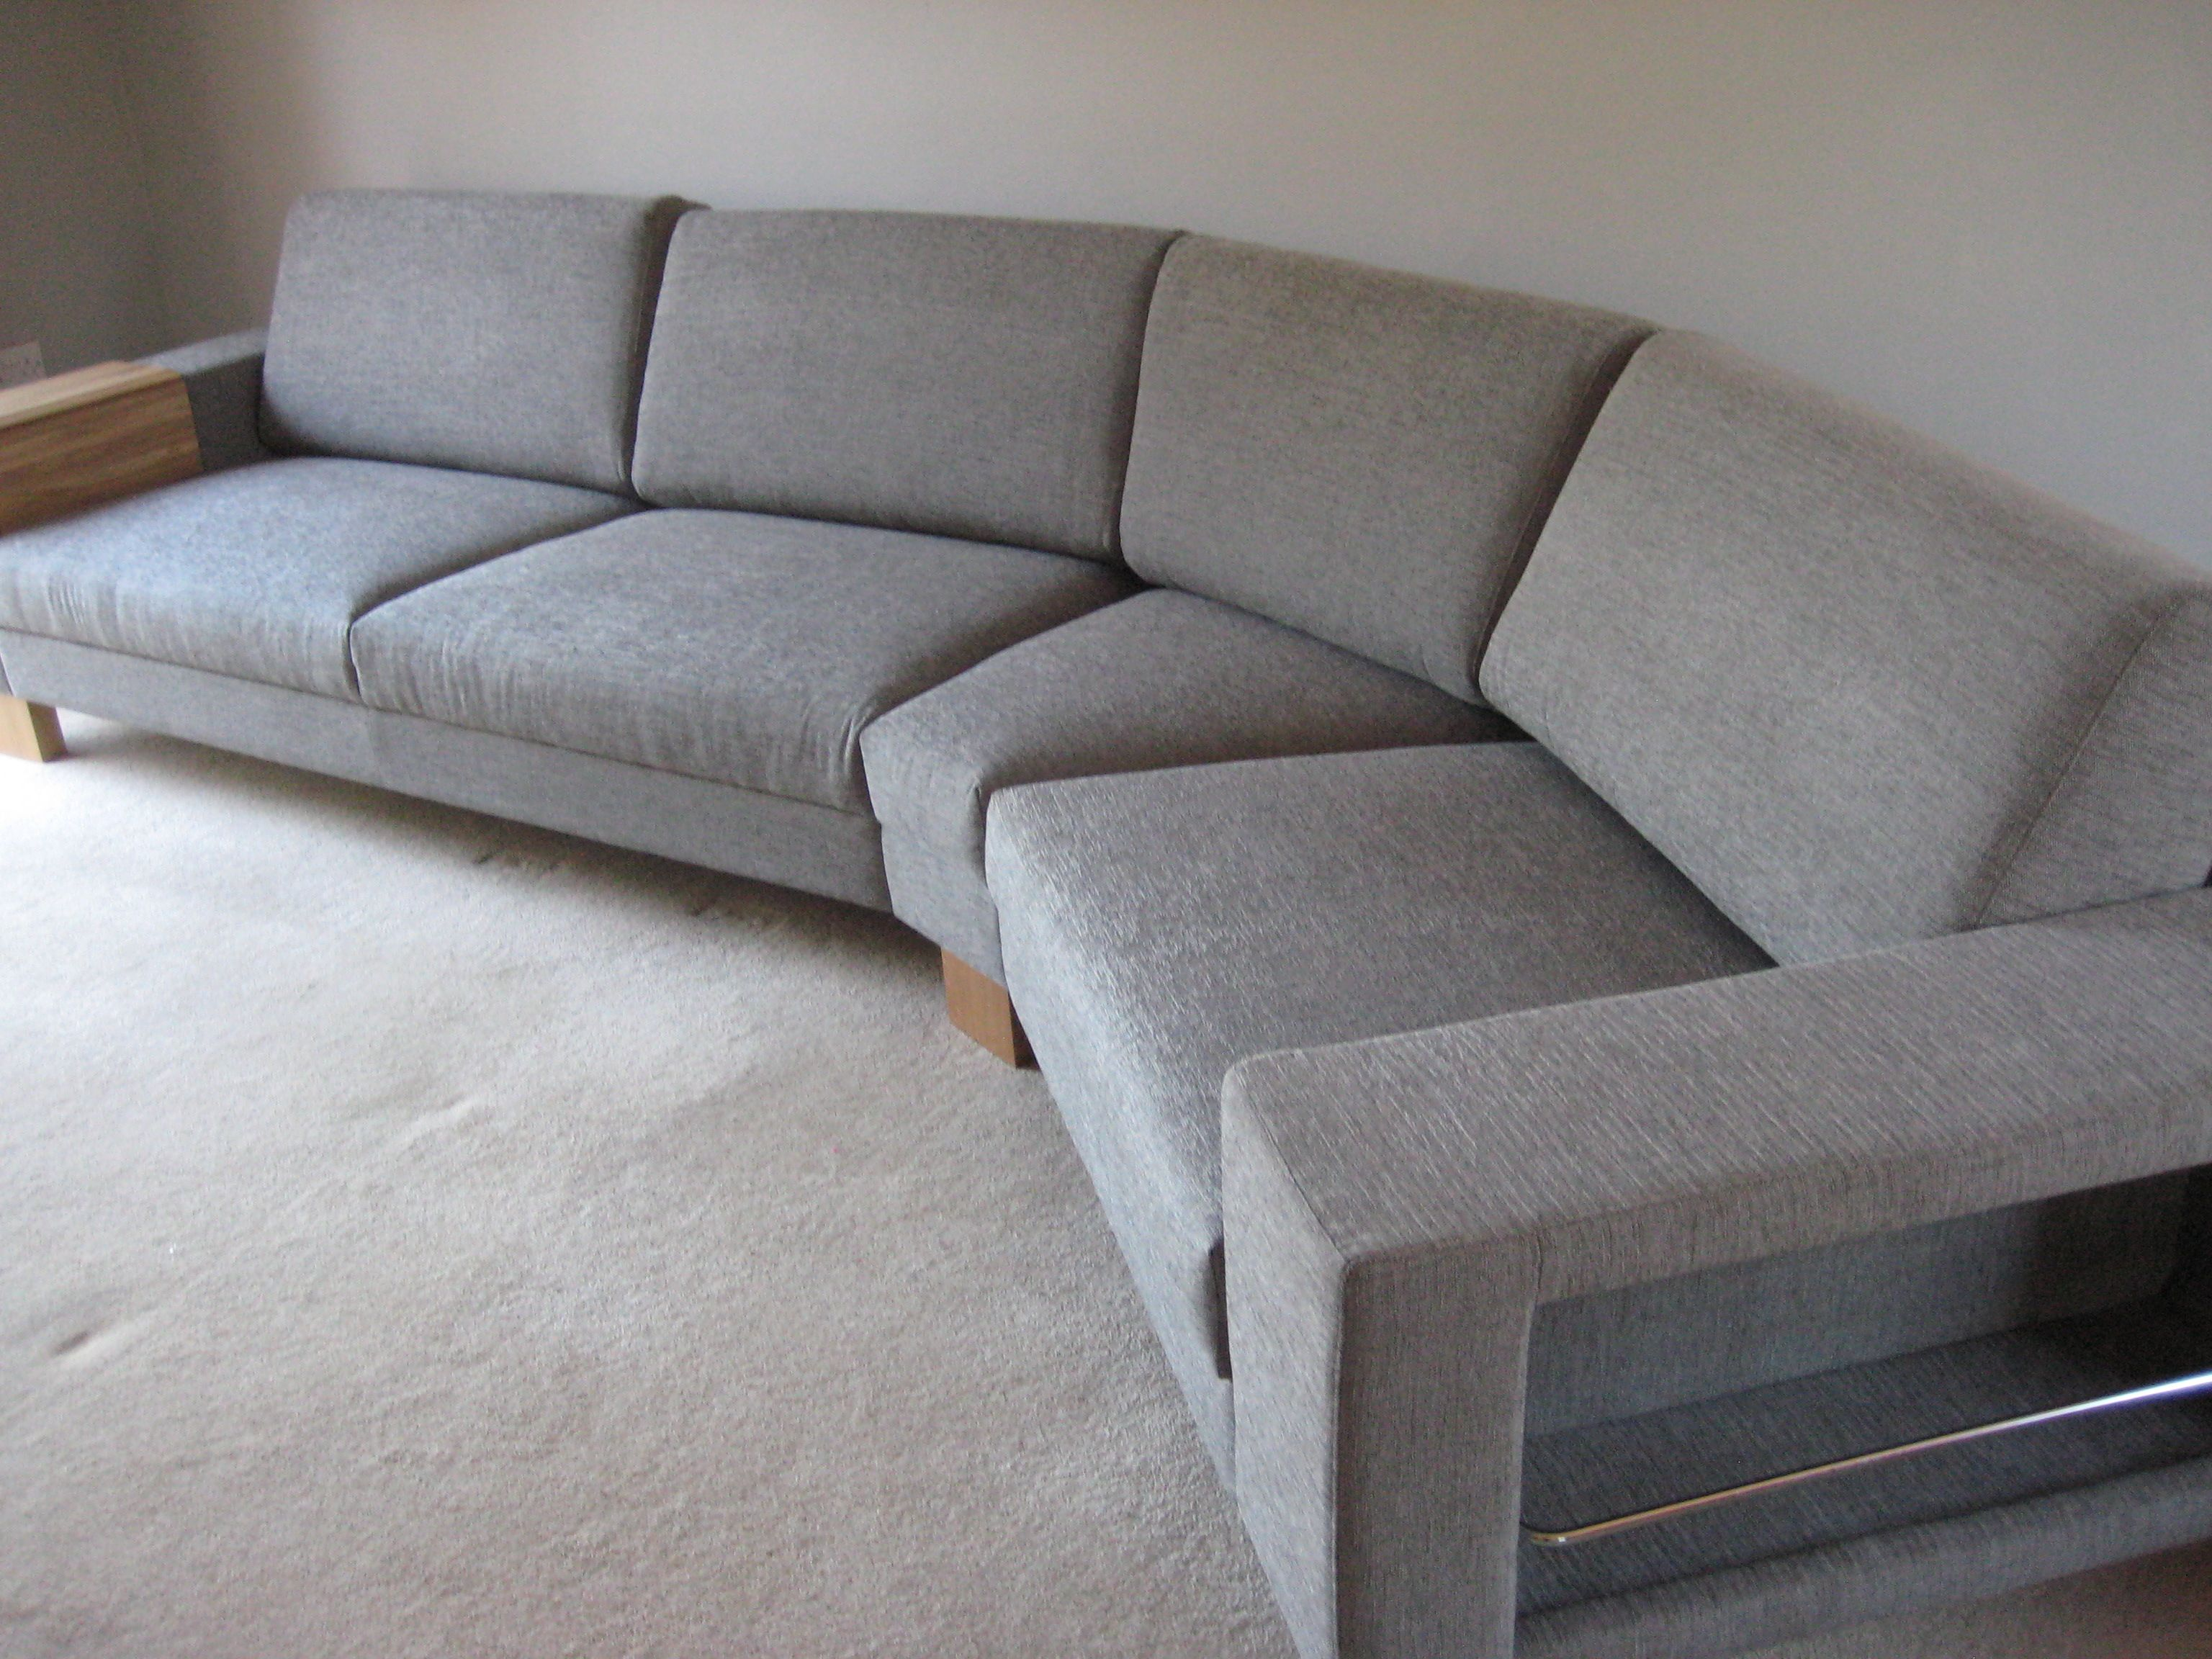 Corlyus Sectional Seating This Comprises Of A Left Arm 180 Cm Seat Section With Angled Corner Section With A 90 Cm Sofa Section Fi Sofa Sofa Sale Sectional